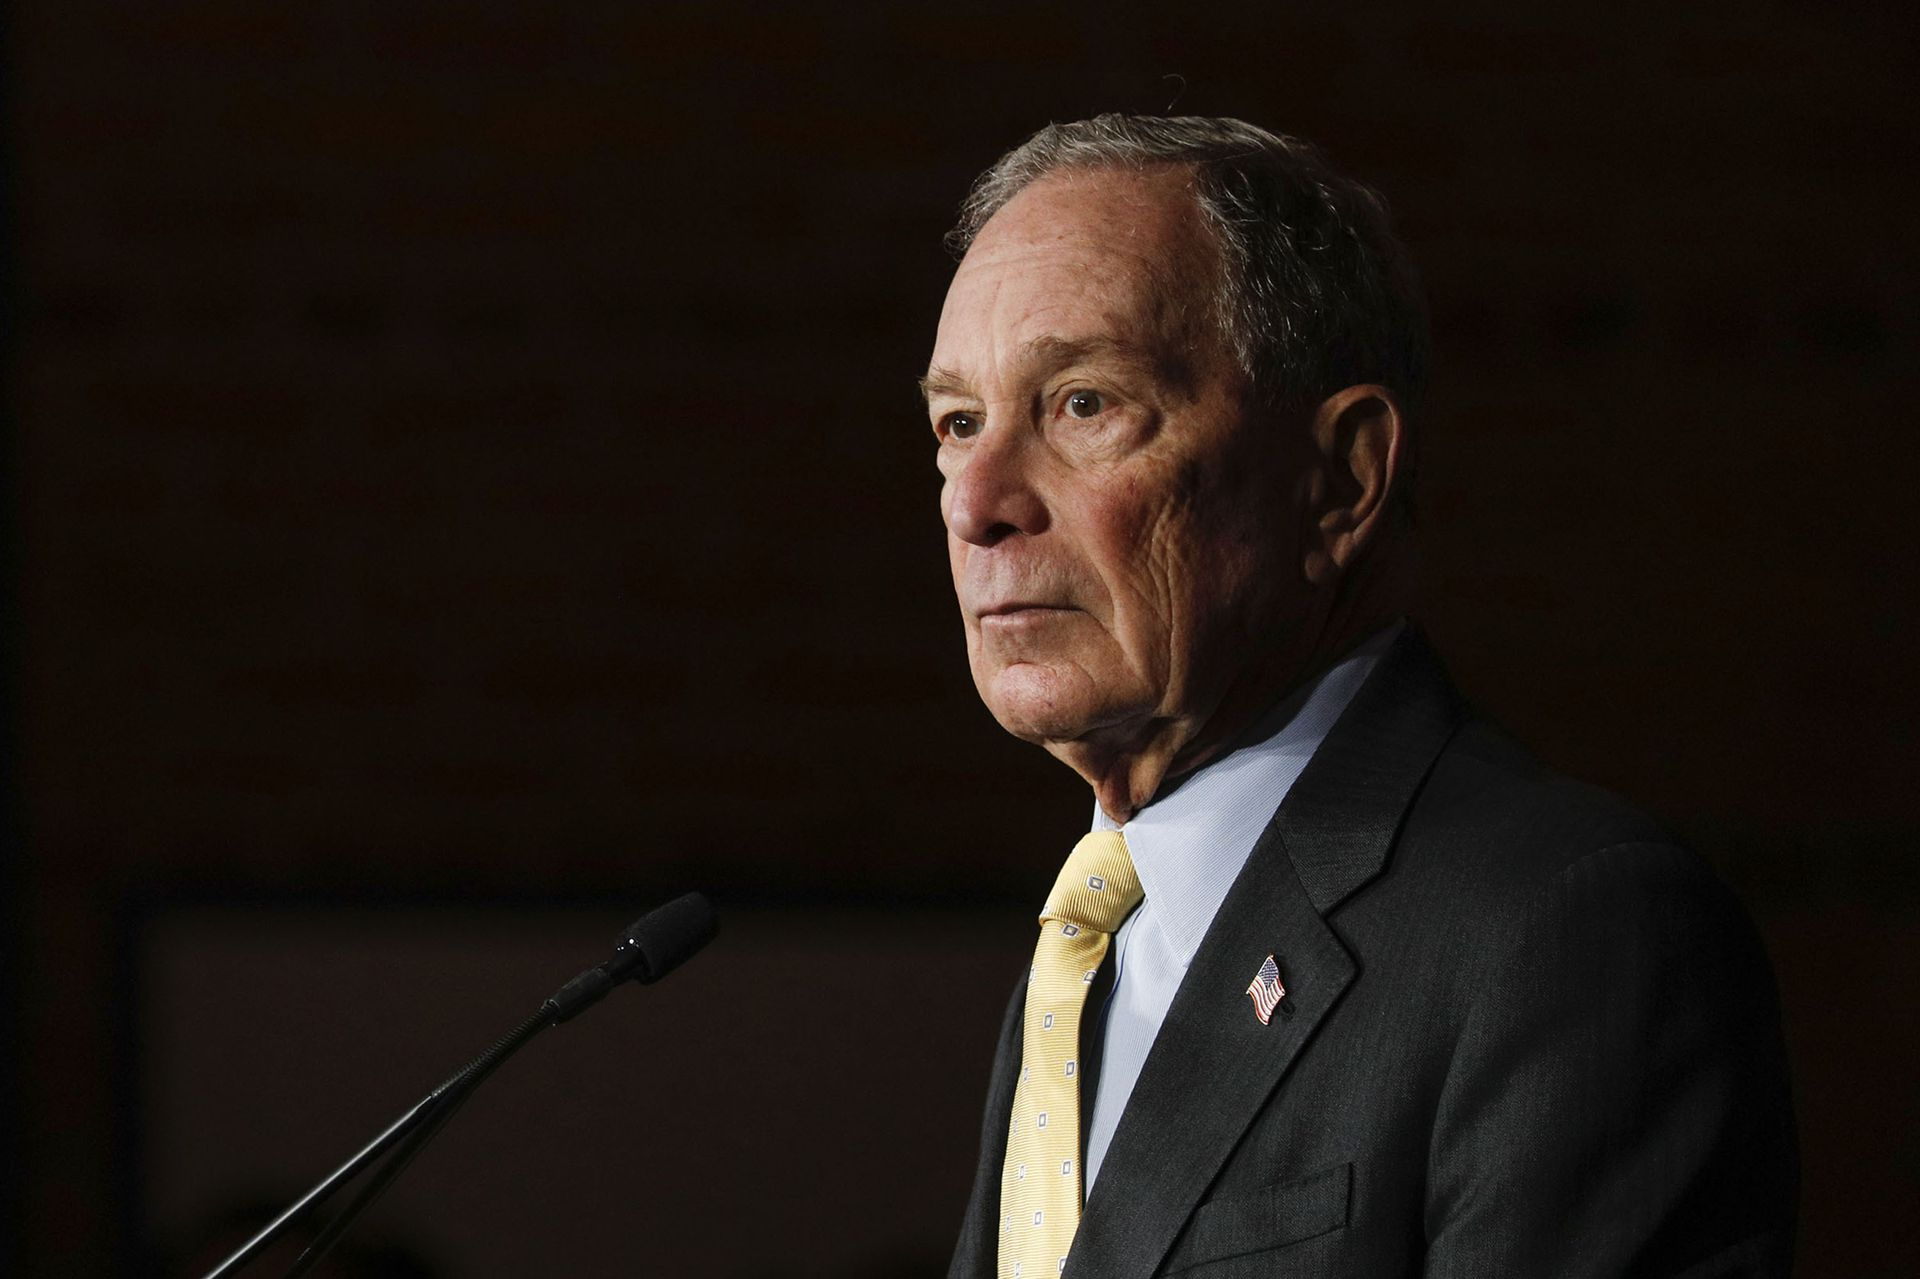 Bloomberg's big bet on the power of money